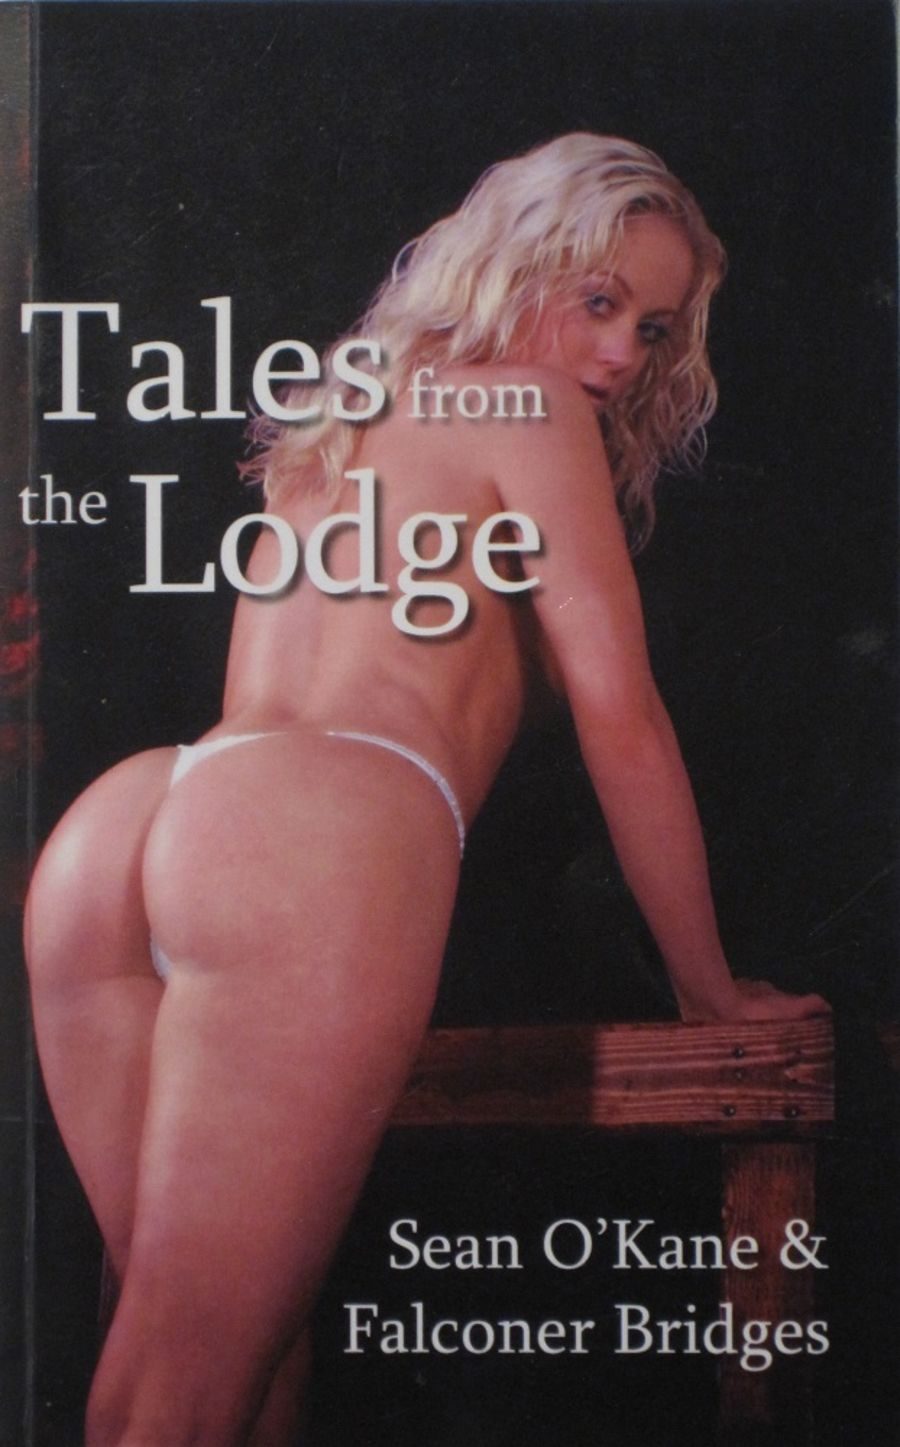 TALES FROM THE LODGE.  2007 EROTIC FICTION PAPERBACK BOOK.